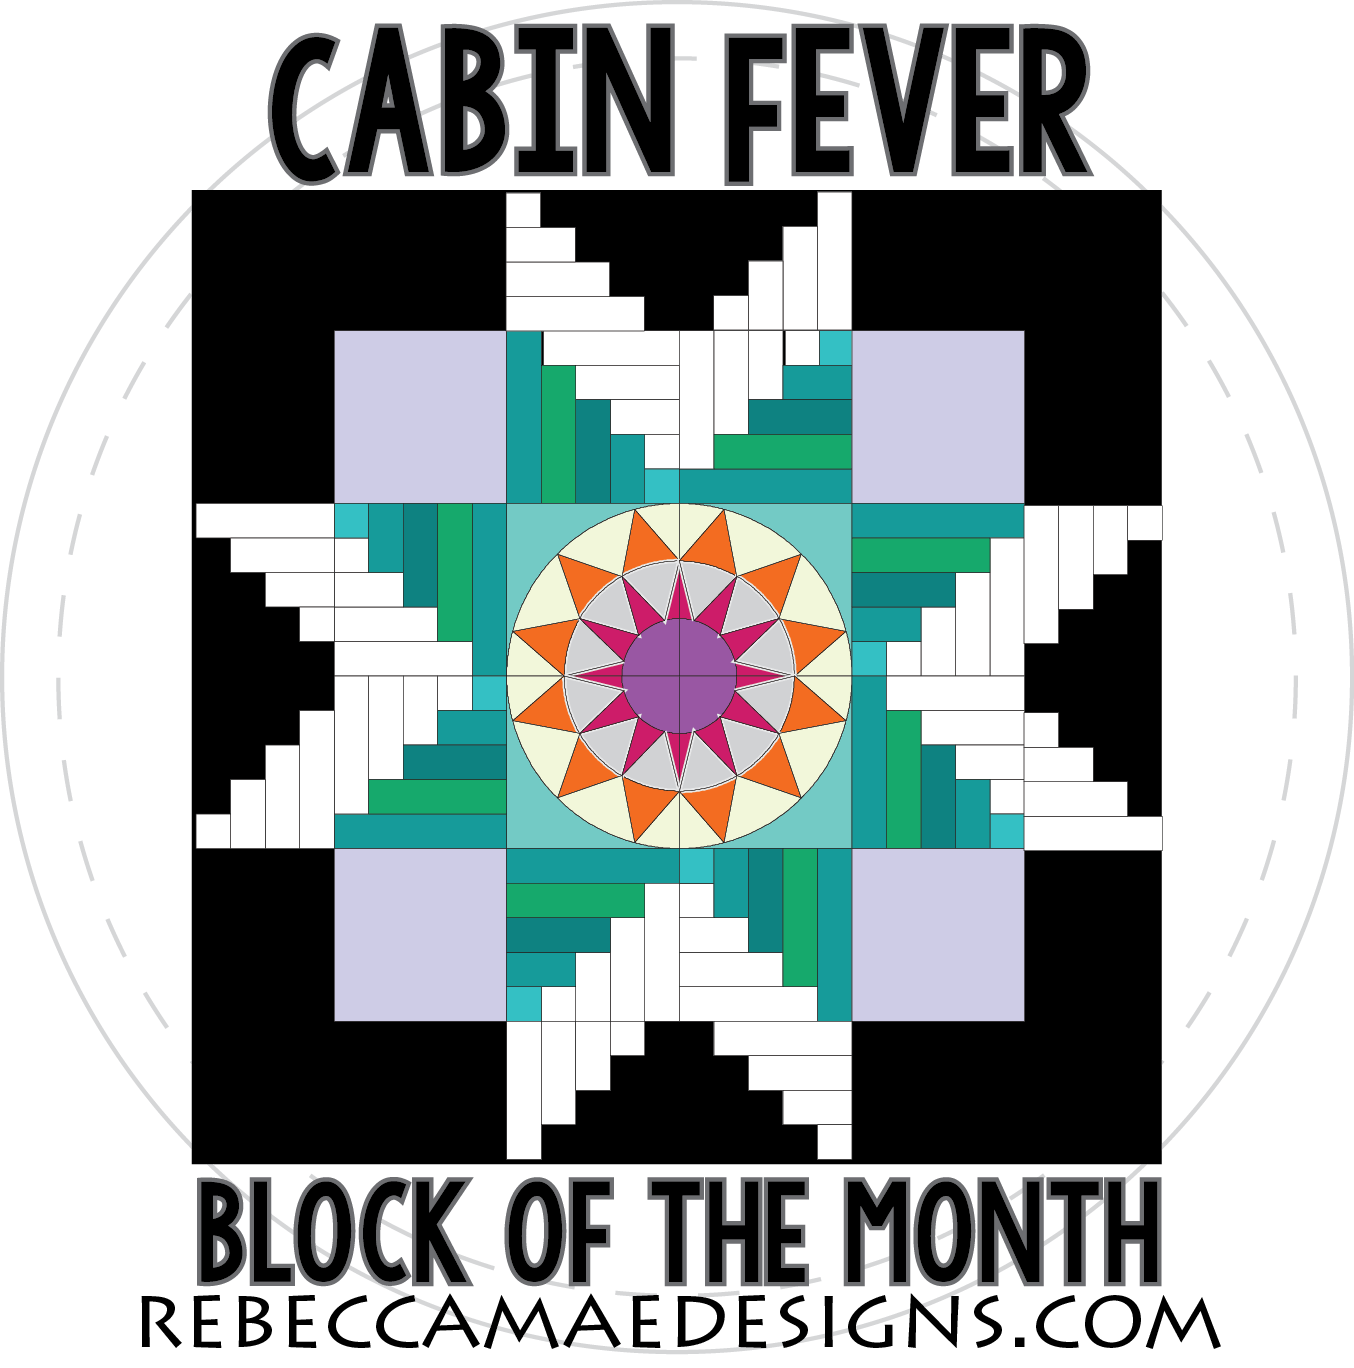 Quilt clipart quilt block. Cabin fever of the